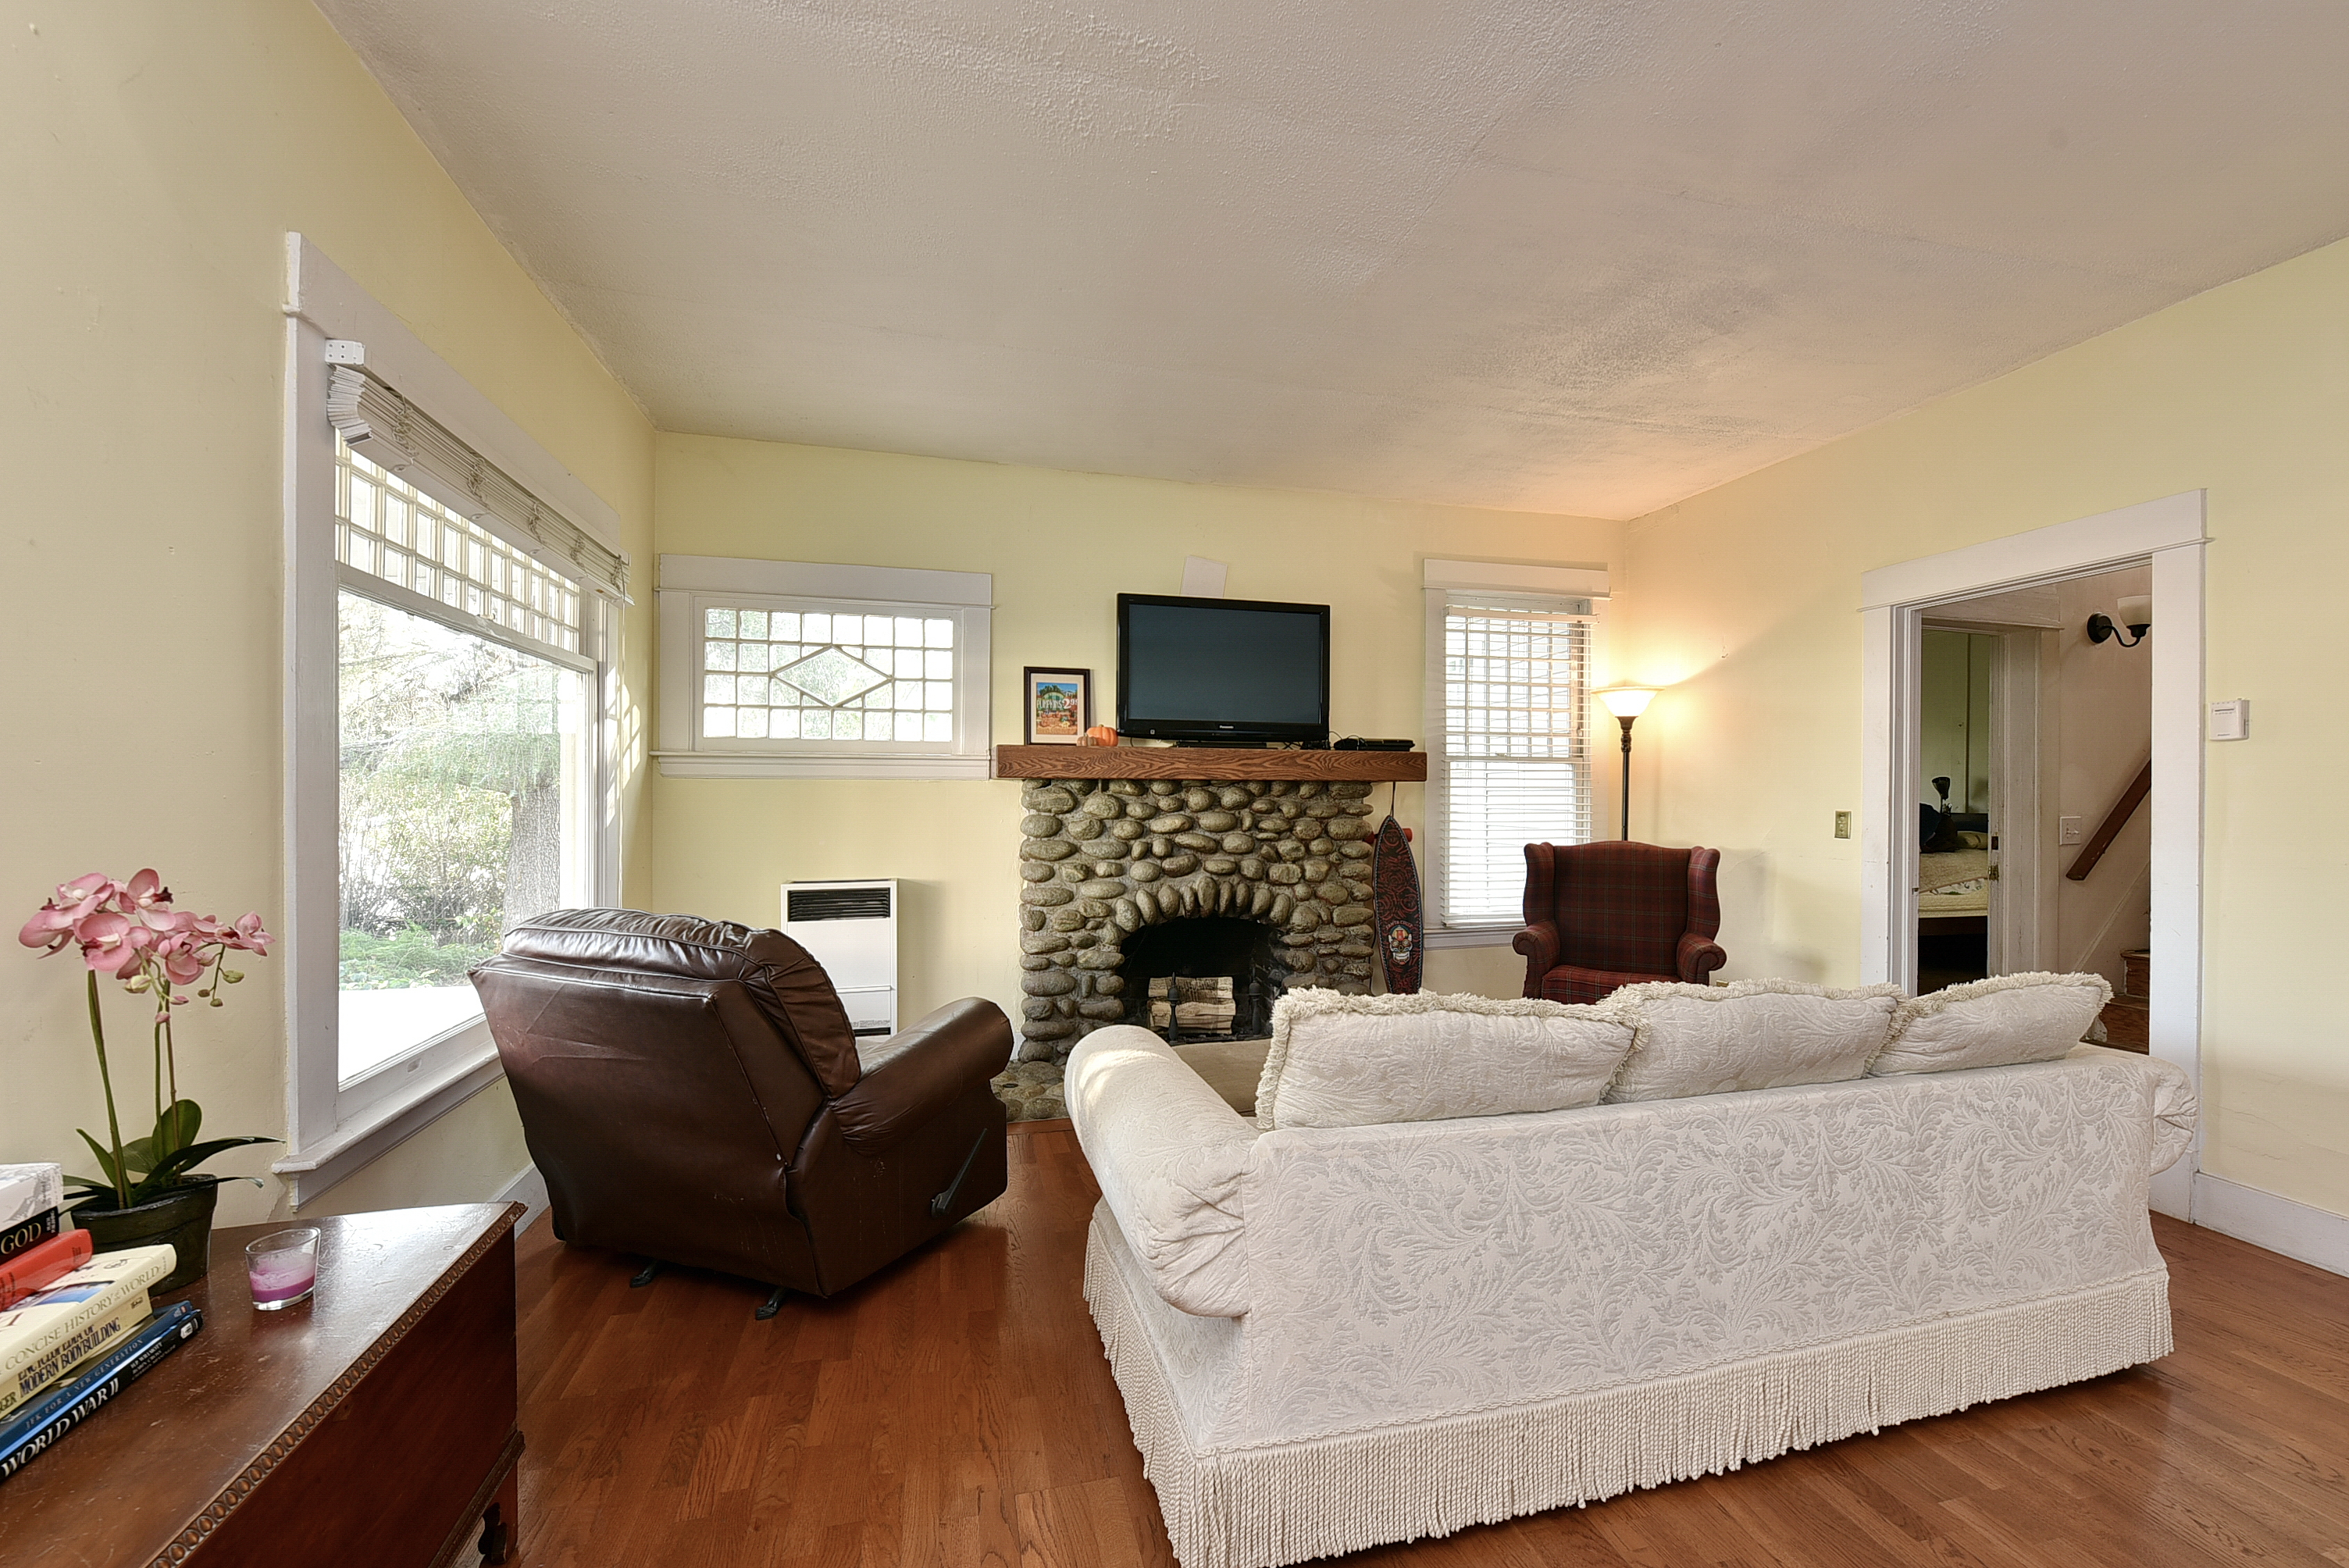 Charming Bungalow In Beautiful And Quaint Monrovia